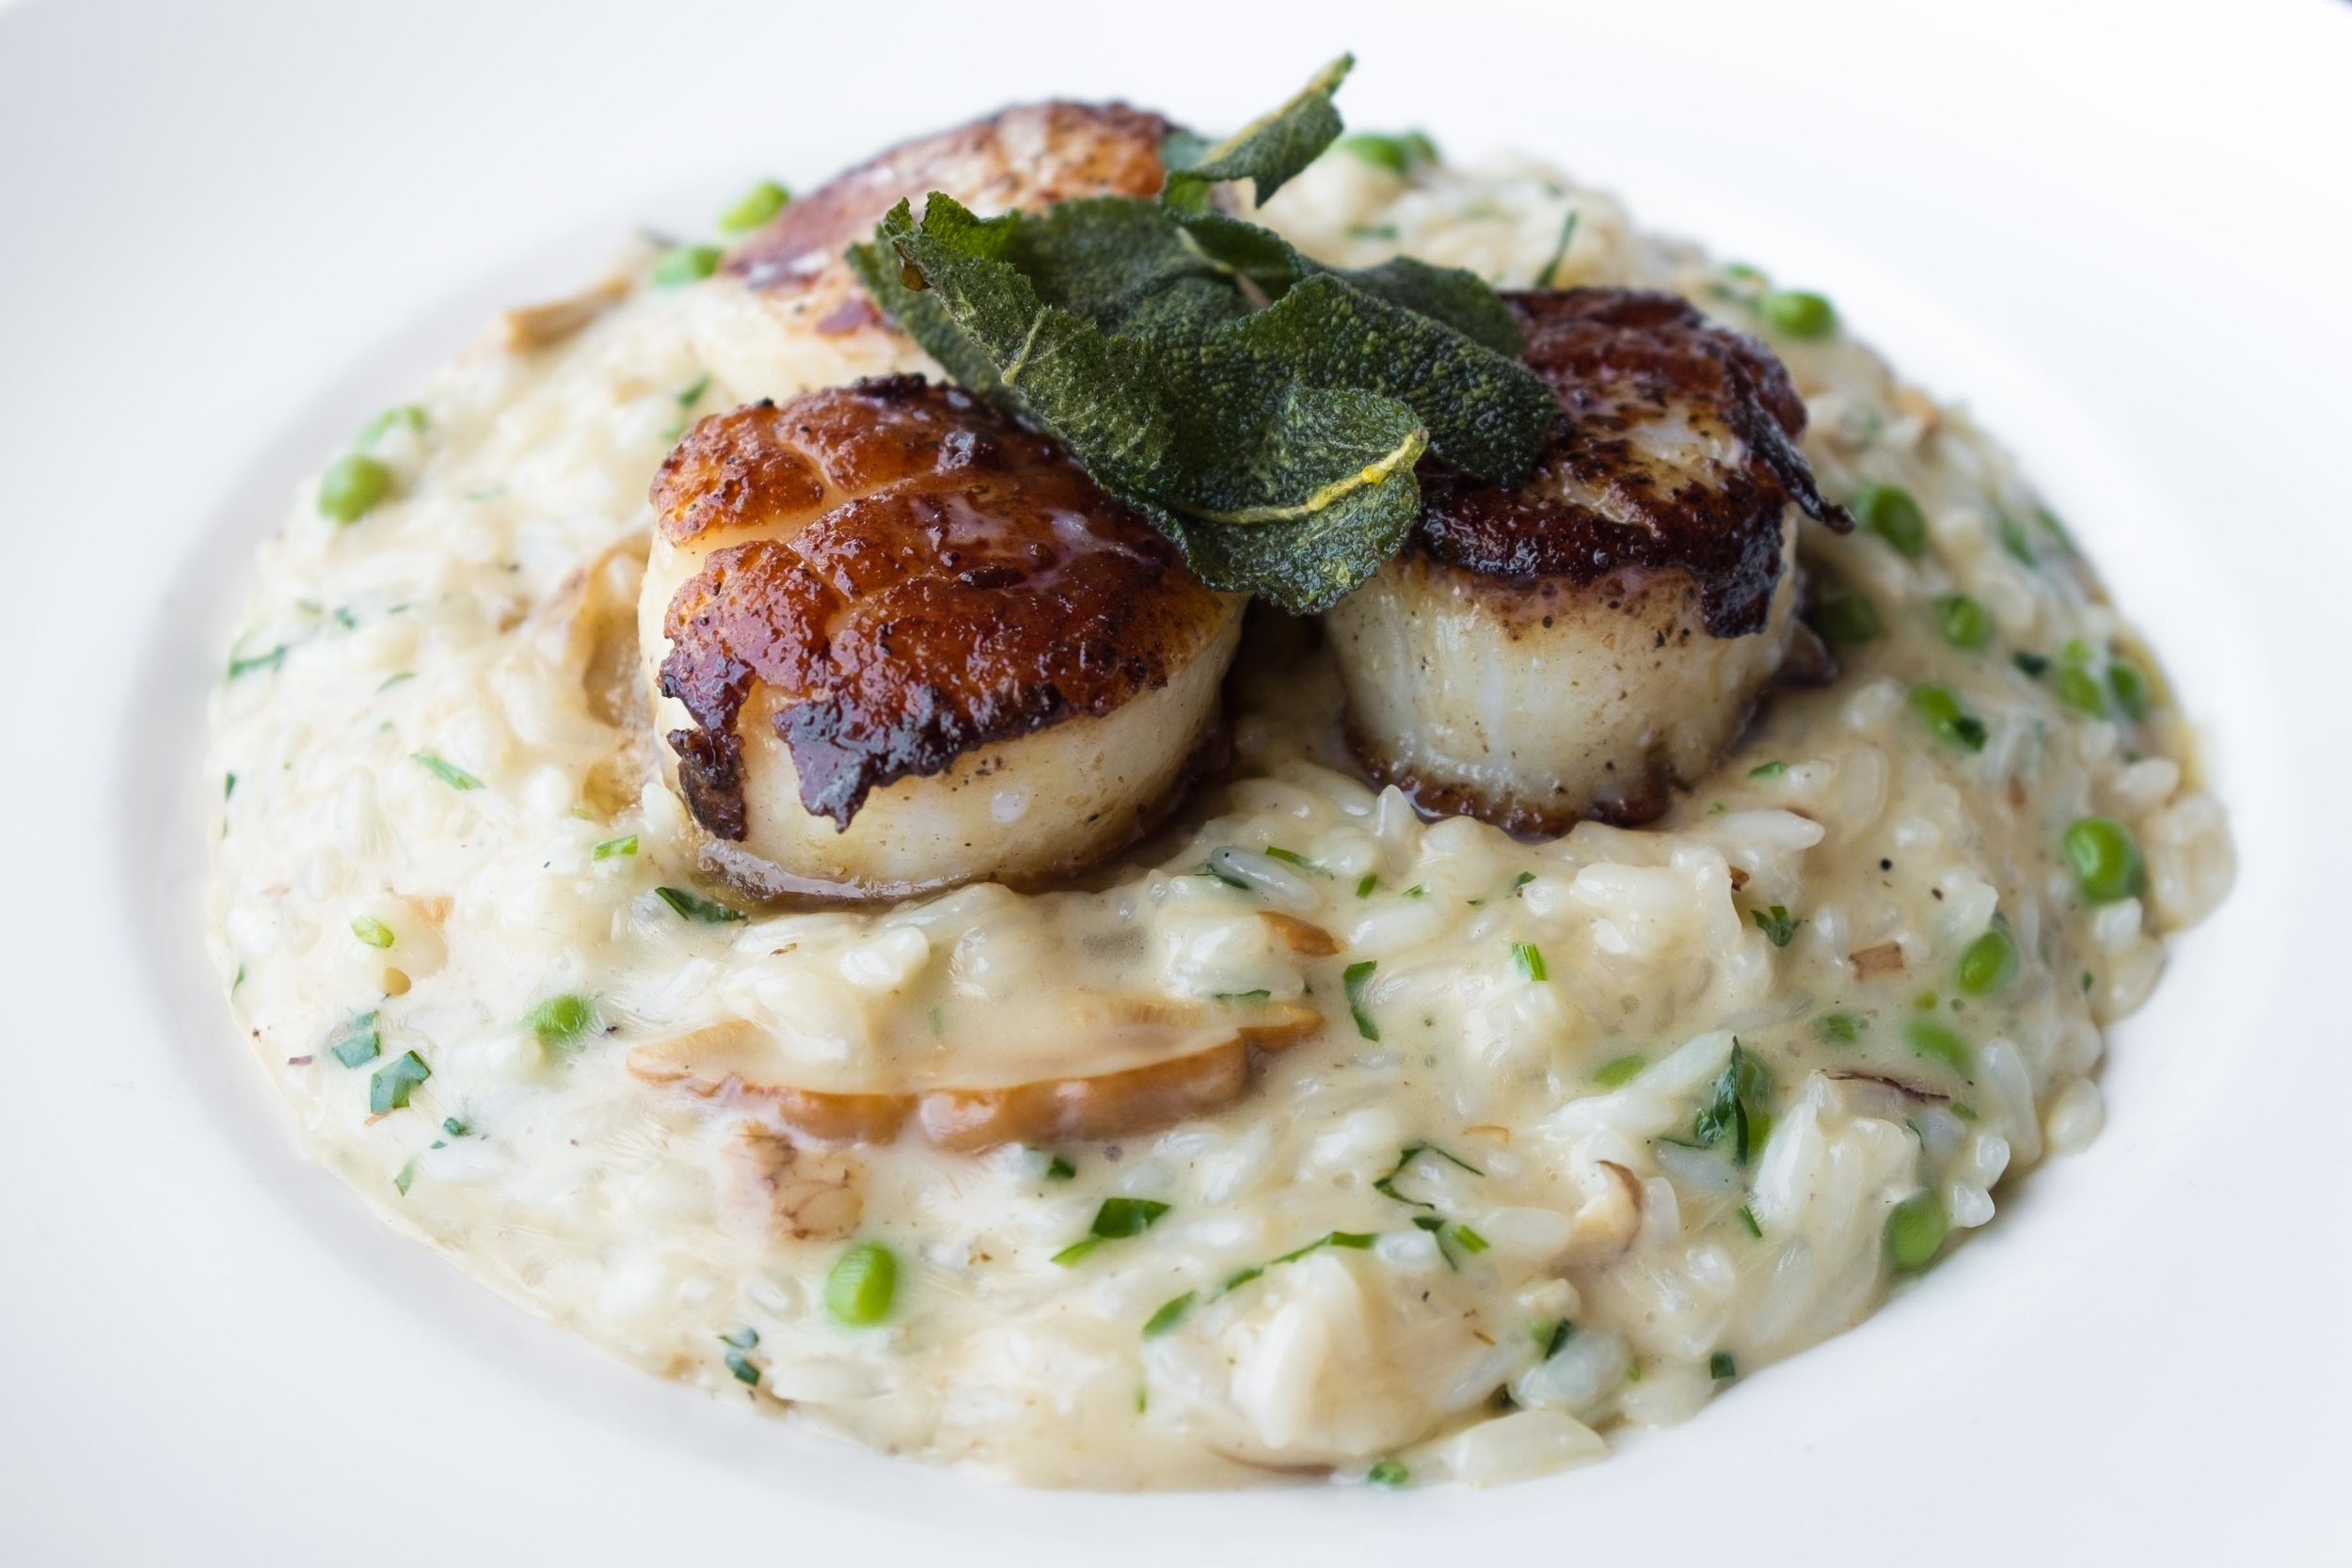 Roasted Dayboat Scallops atop Risotto